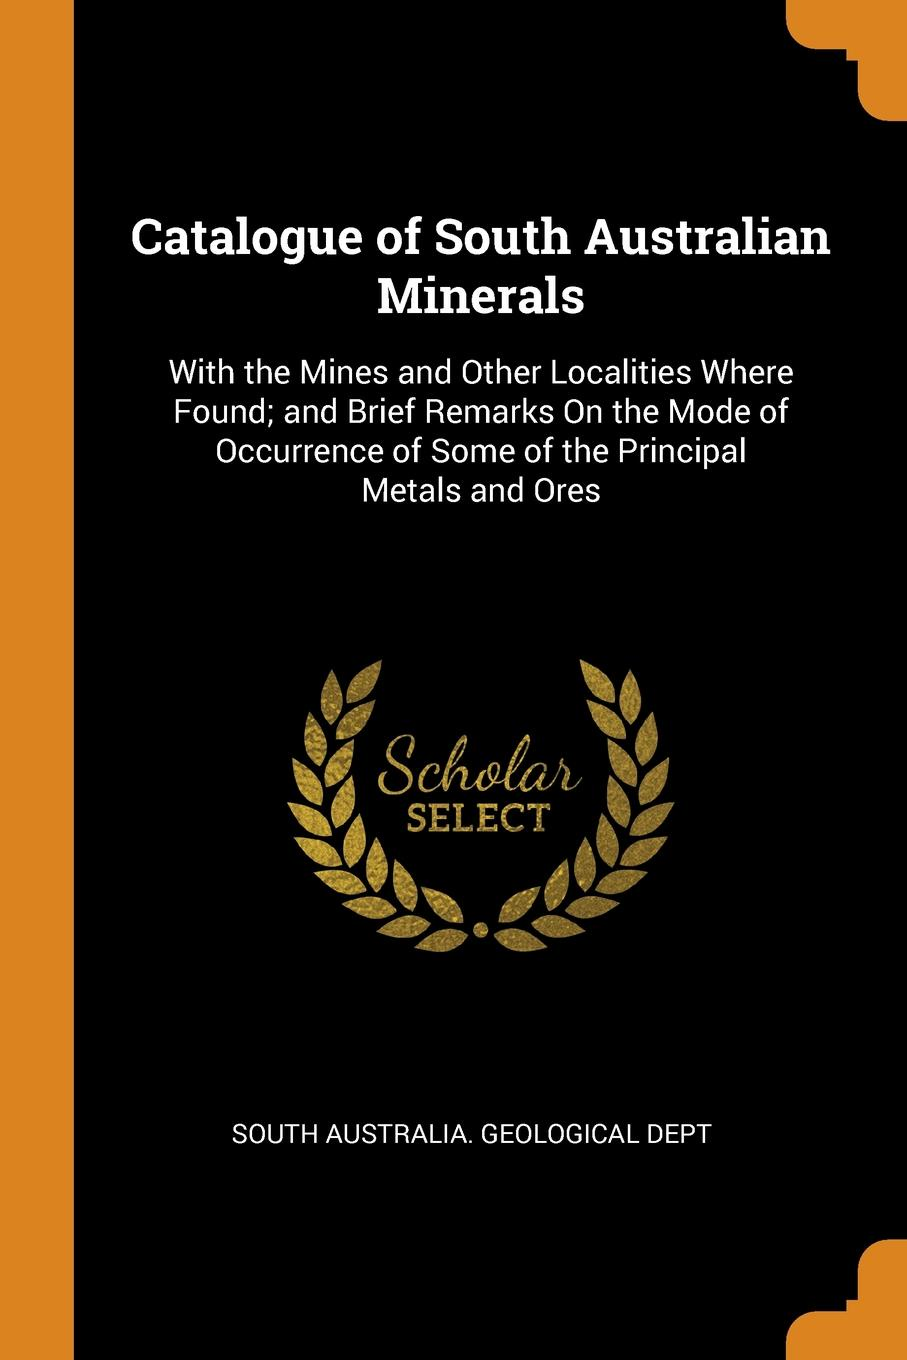 Catalogue of South Australian Minerals. With the Mines and Other Localities Where Found; and Brief Remarks On the Mode of Occurrence of Some of the Principal Metals and Ores